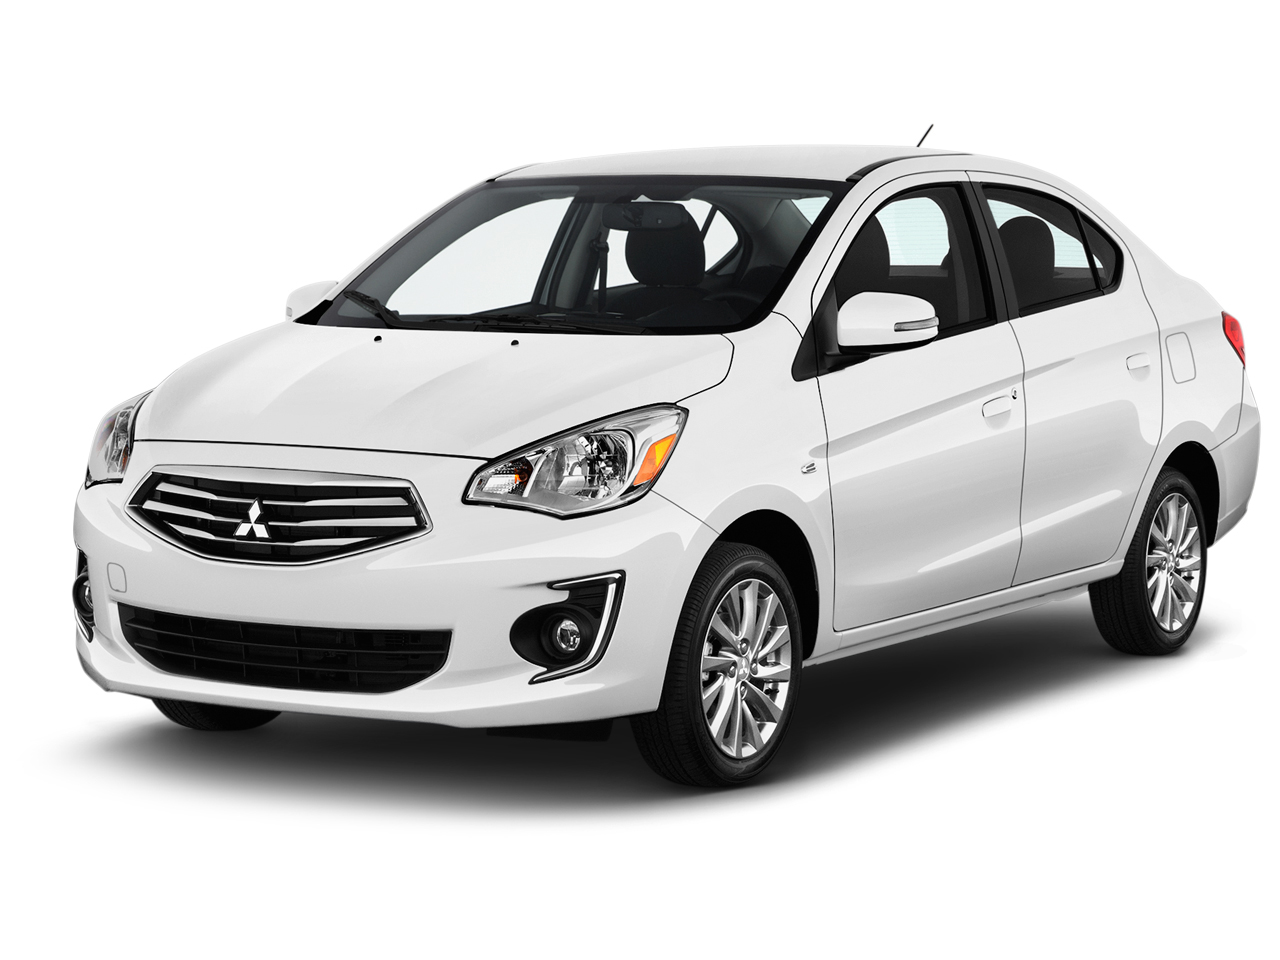 2018 Mitsubishi Mirage G4 Review, Ratings, Specs, Prices